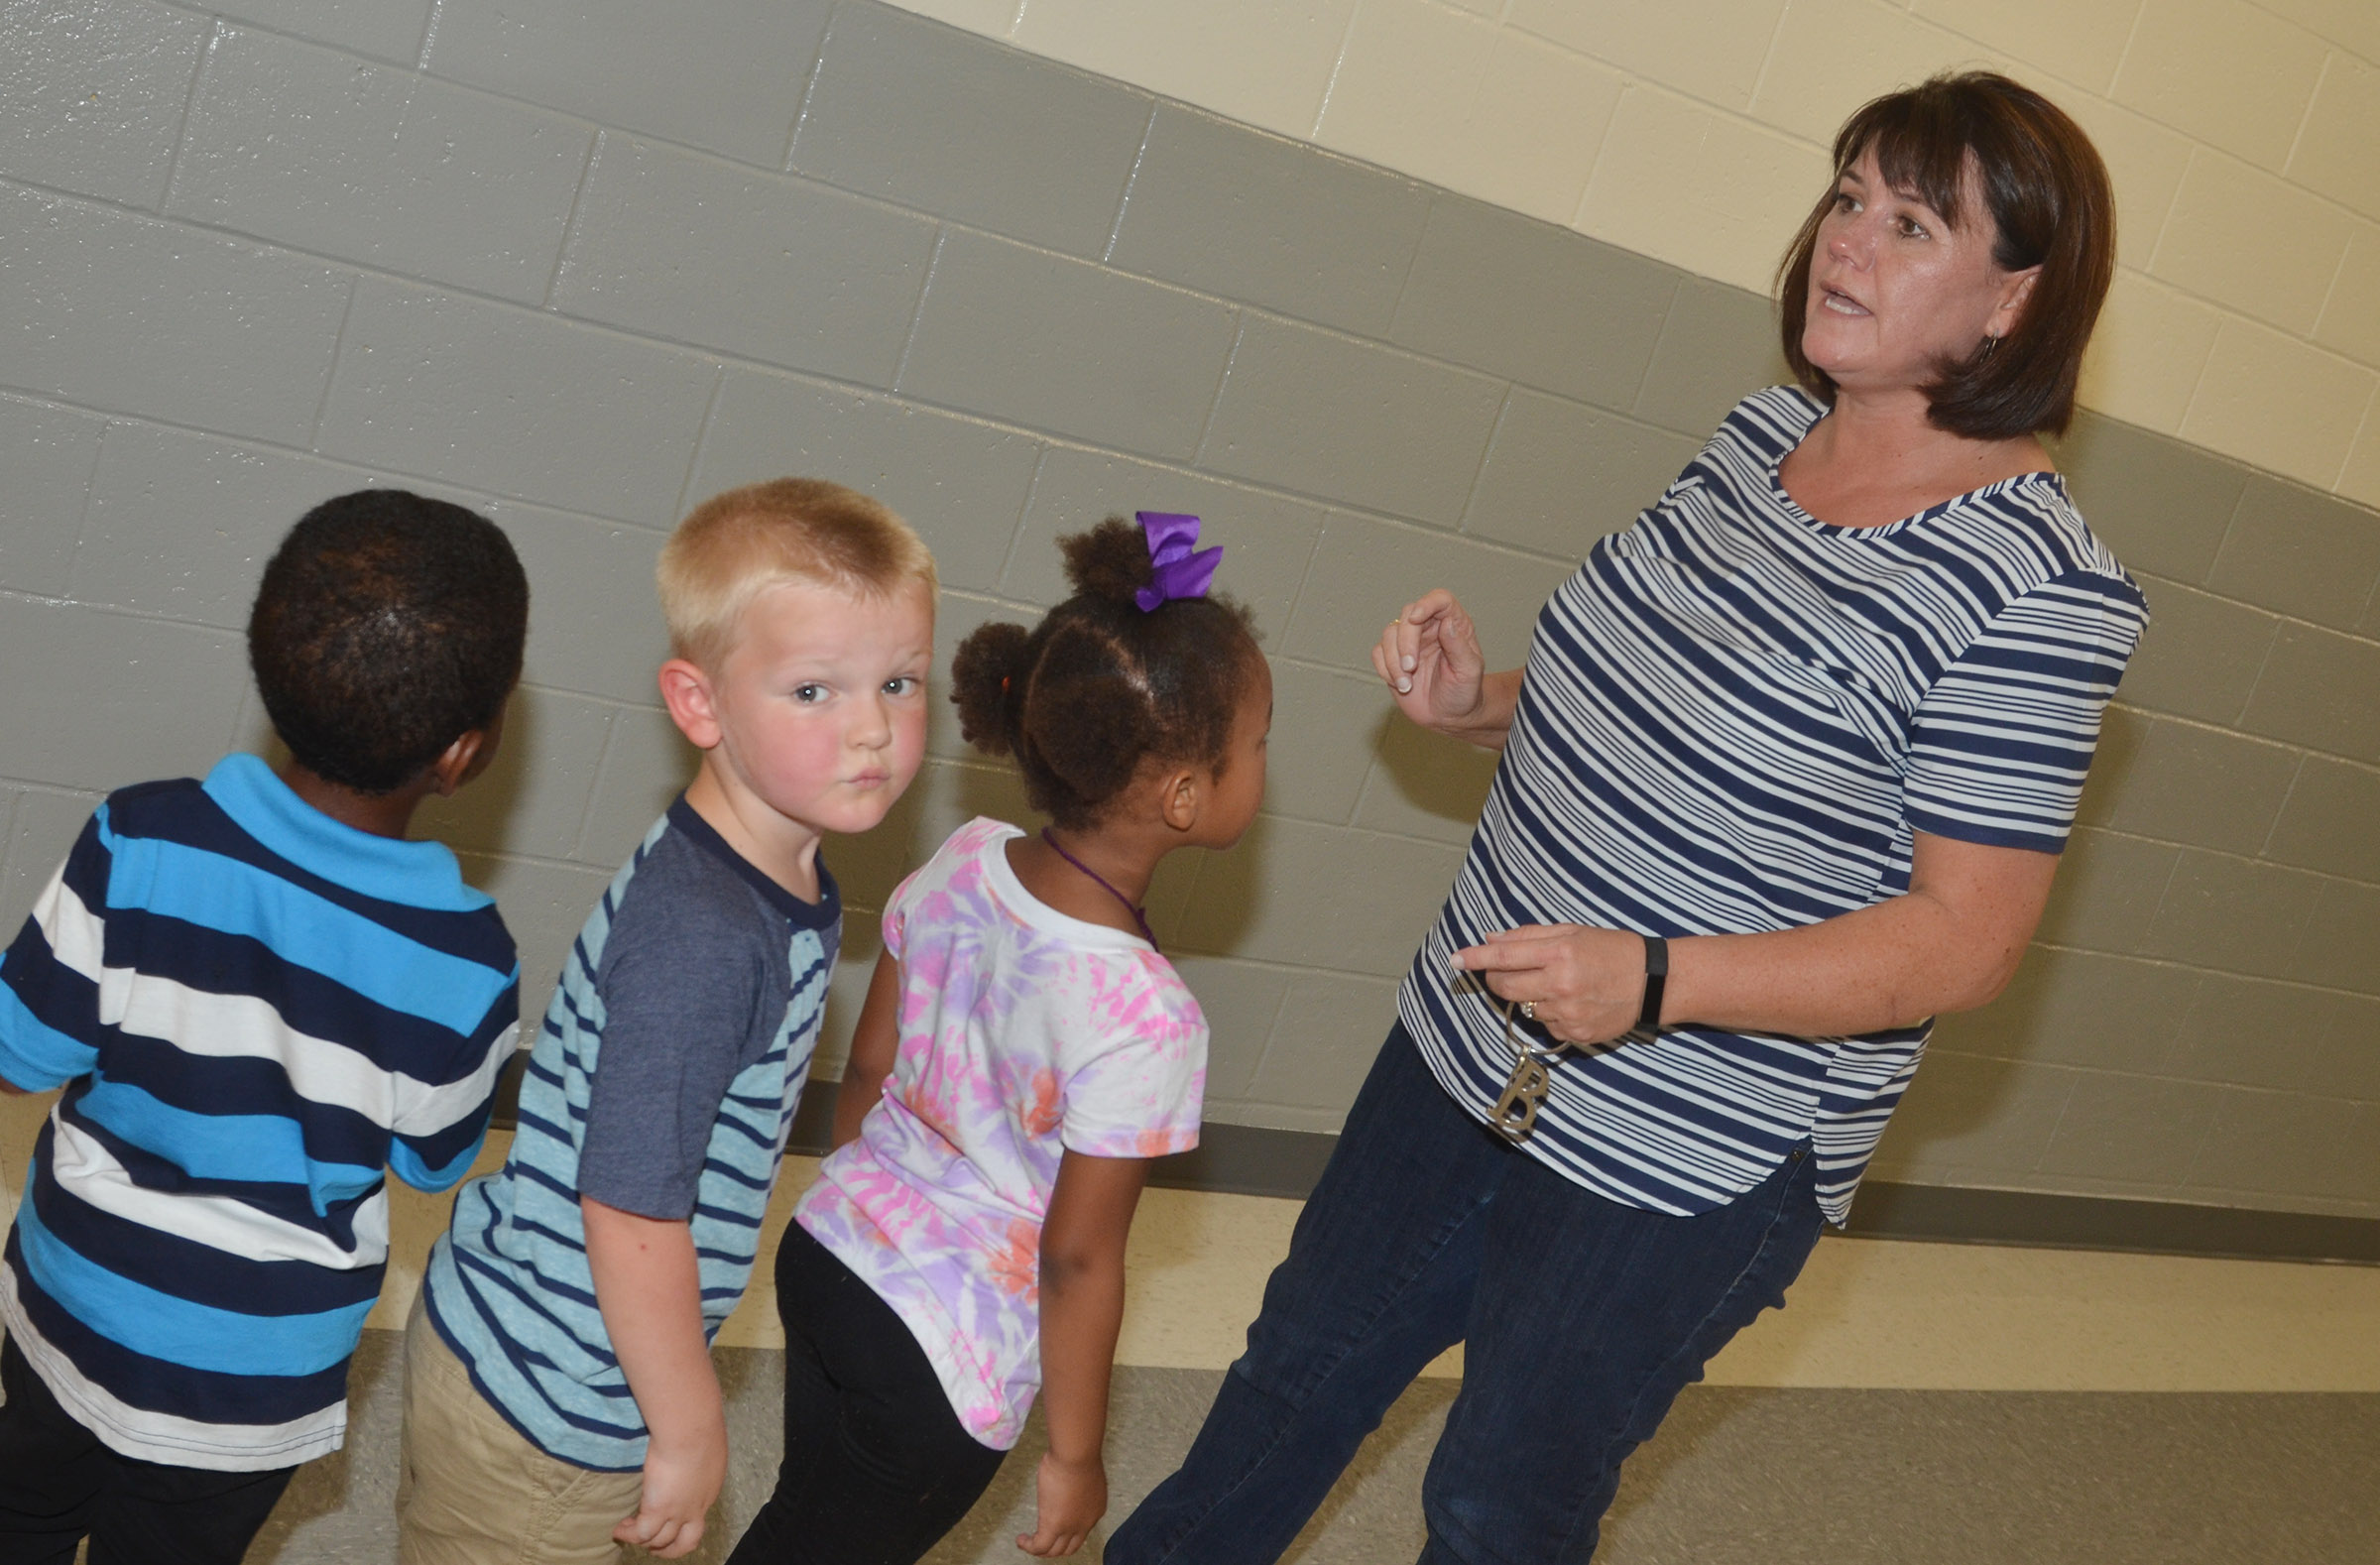 CES preschool teacher Denise Spencer shows her students, from left, Rakim Dunn, Hoyt Davis and Modesty Taylor how to line up in the hallway.